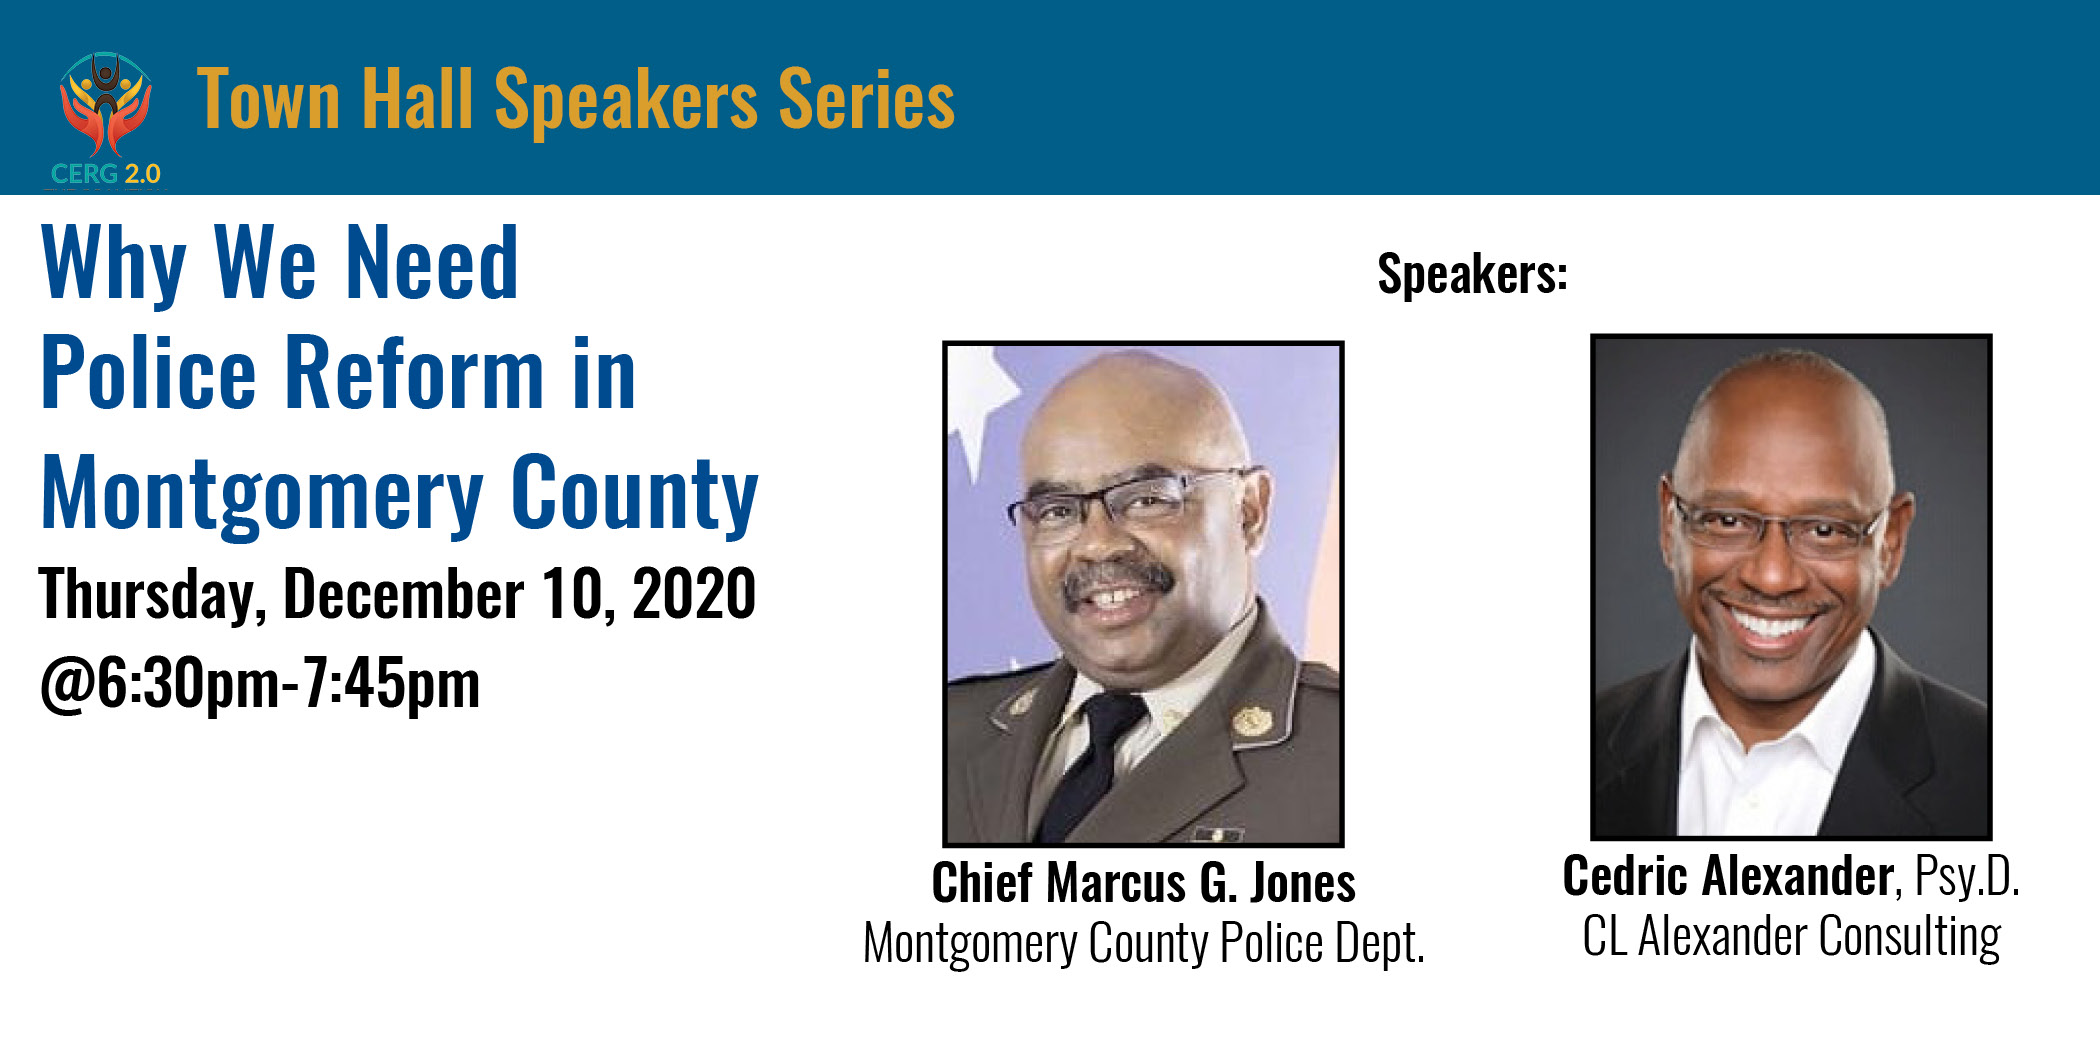 Why We Need Police Reform - Thursday, December 10, 2020 @6:30pm